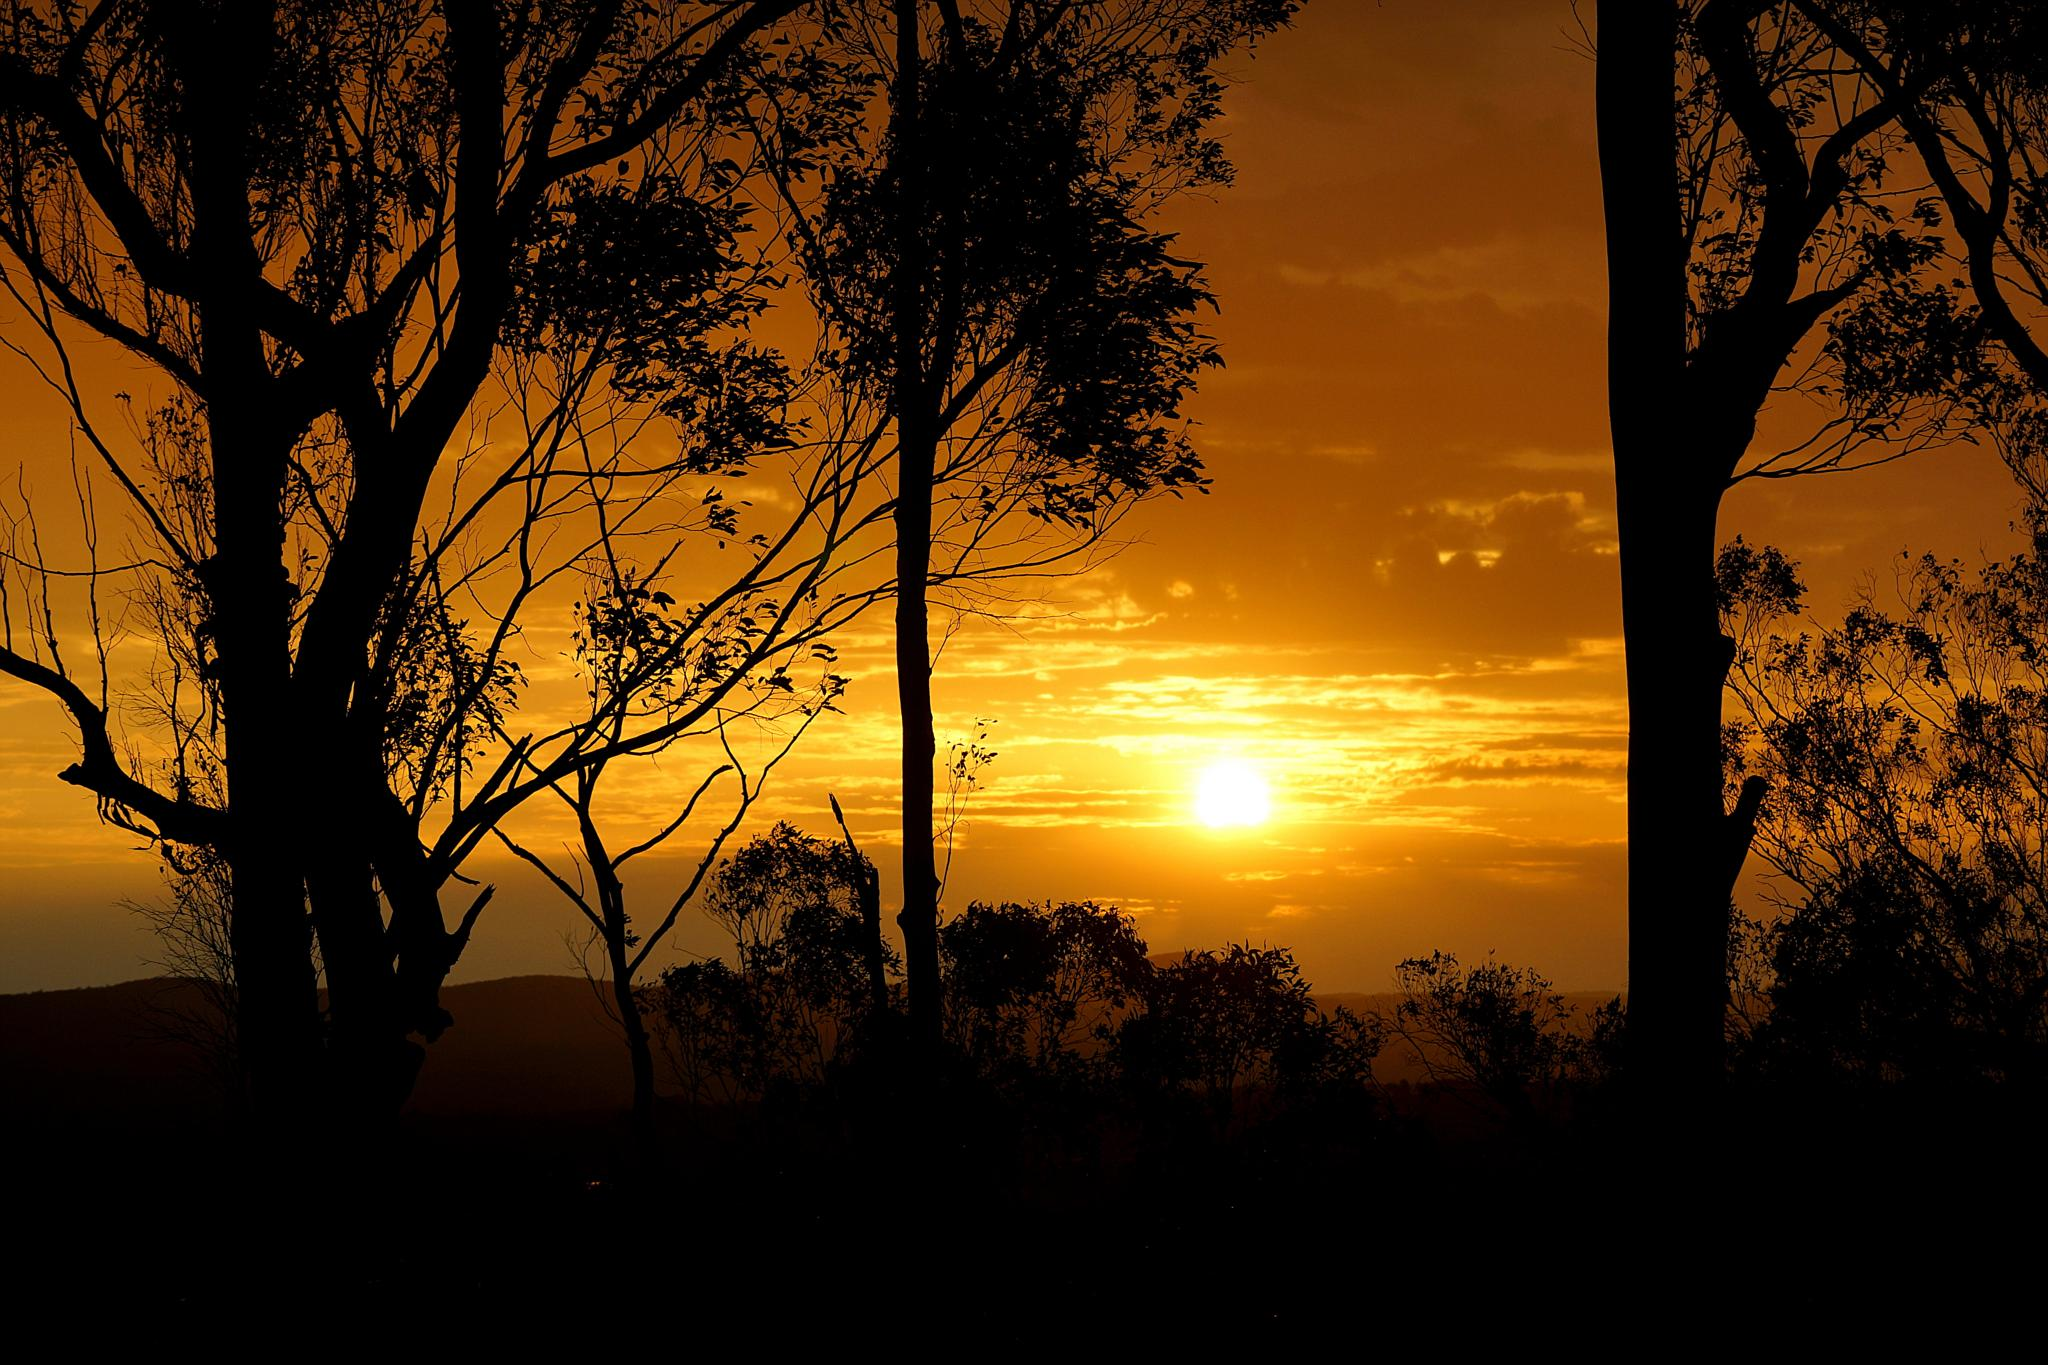 Aussie Bush Sunset by Peter J Dwight